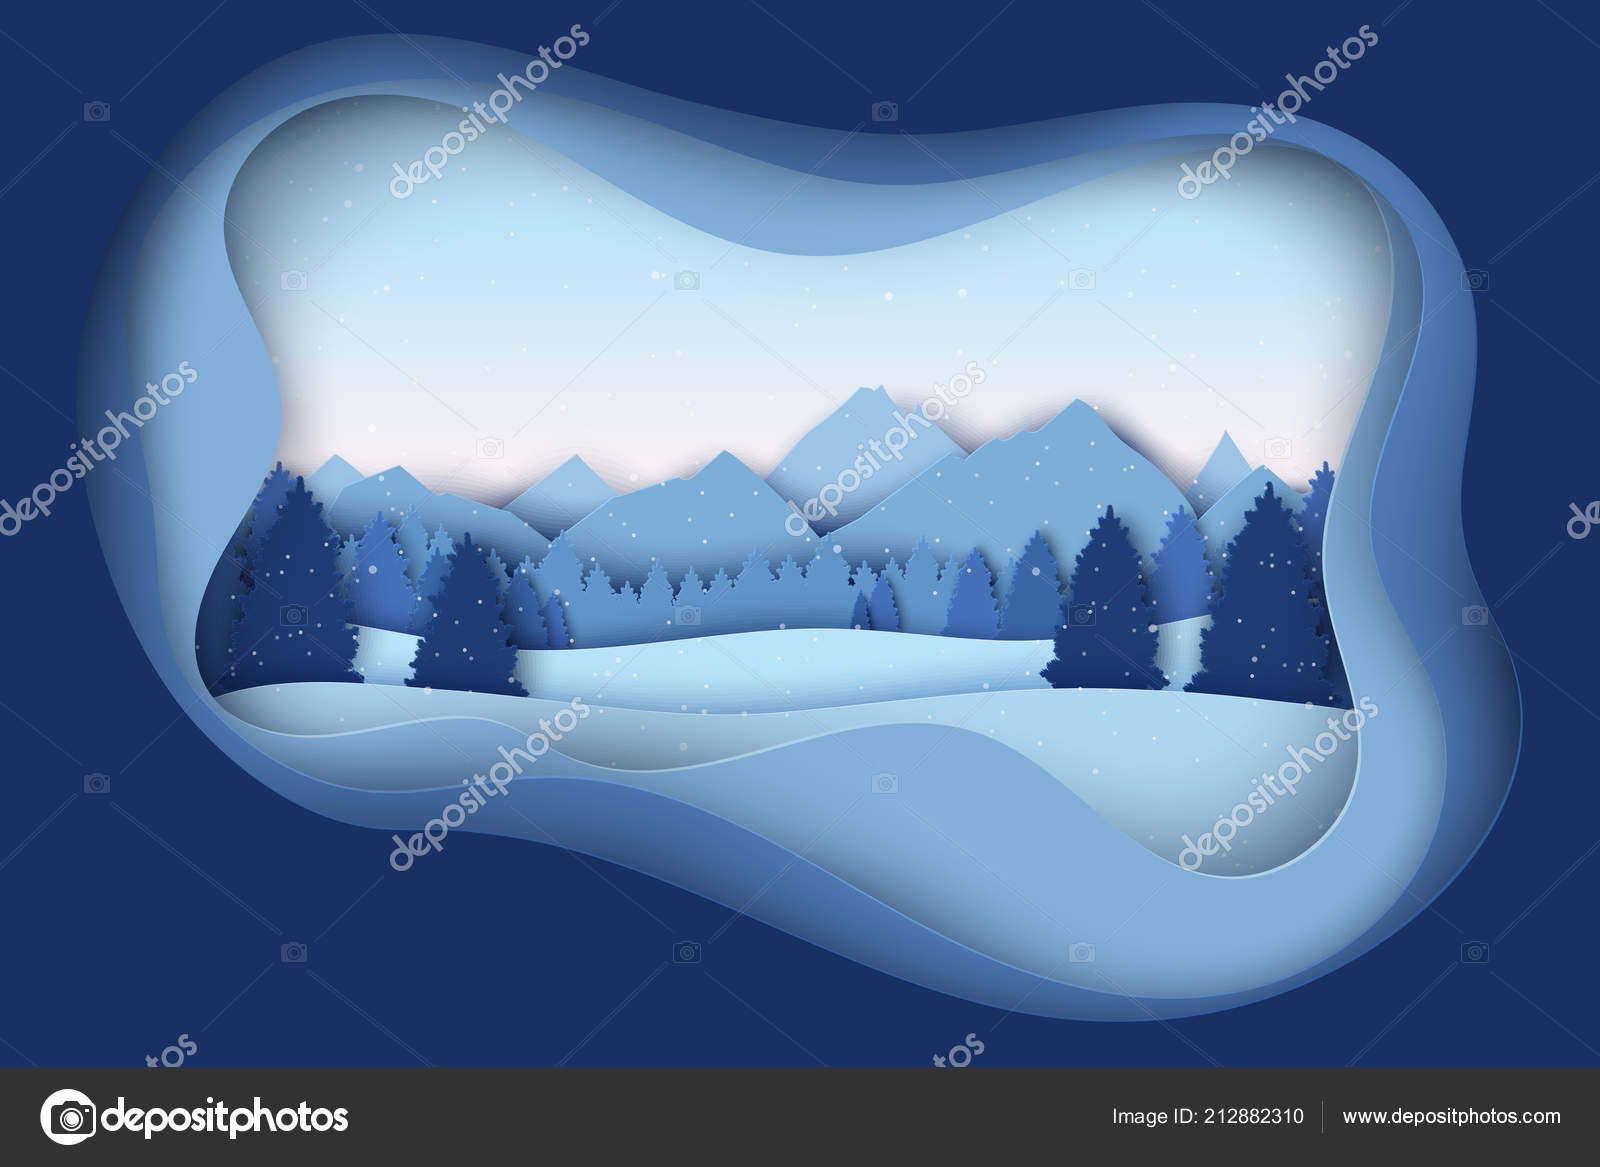 338e54143cf8da Paper Christmas Postcard Winter Landscape Pine Trees Mountains Hills  Snowflakes — Stock Vector